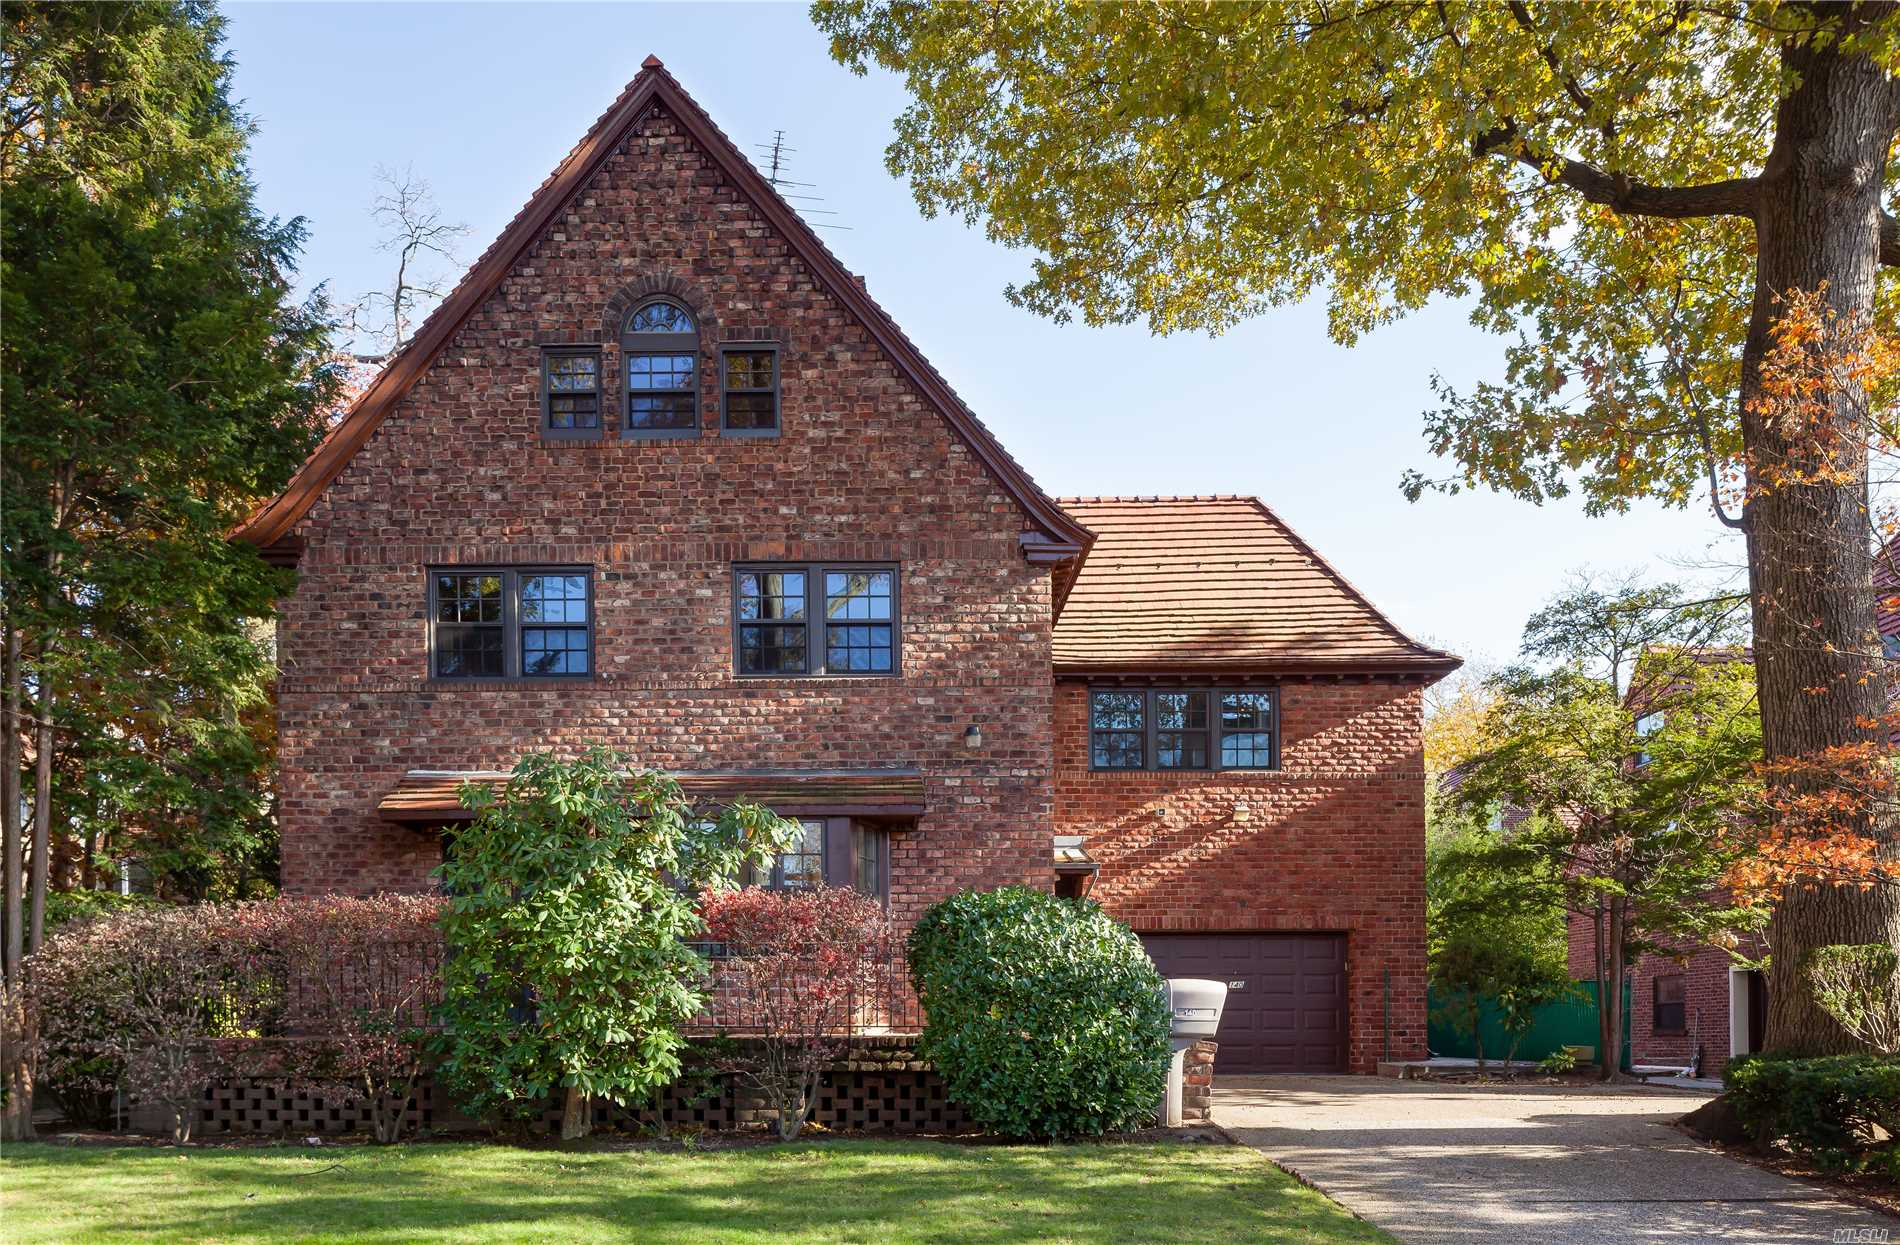 This Grand Fully Renovated Tapestry Brick Colonial Sits On A Private Over-Sized (Approx. 8500 Sf) Lot. Impressive Lr W/Wood-Burning Fpl, Formal Dining Rm, Renovated Kitchen W/Adjoining Breakfast Rm, 5 Br's, 6 Baths, Including A Luxe Master Br Suite With Fpl, Bath And Private Patio, Plus Add'l 4 Br's With A Private Guest Or Office Wing, 2nd Back Staircase, Elevator & Sauna.